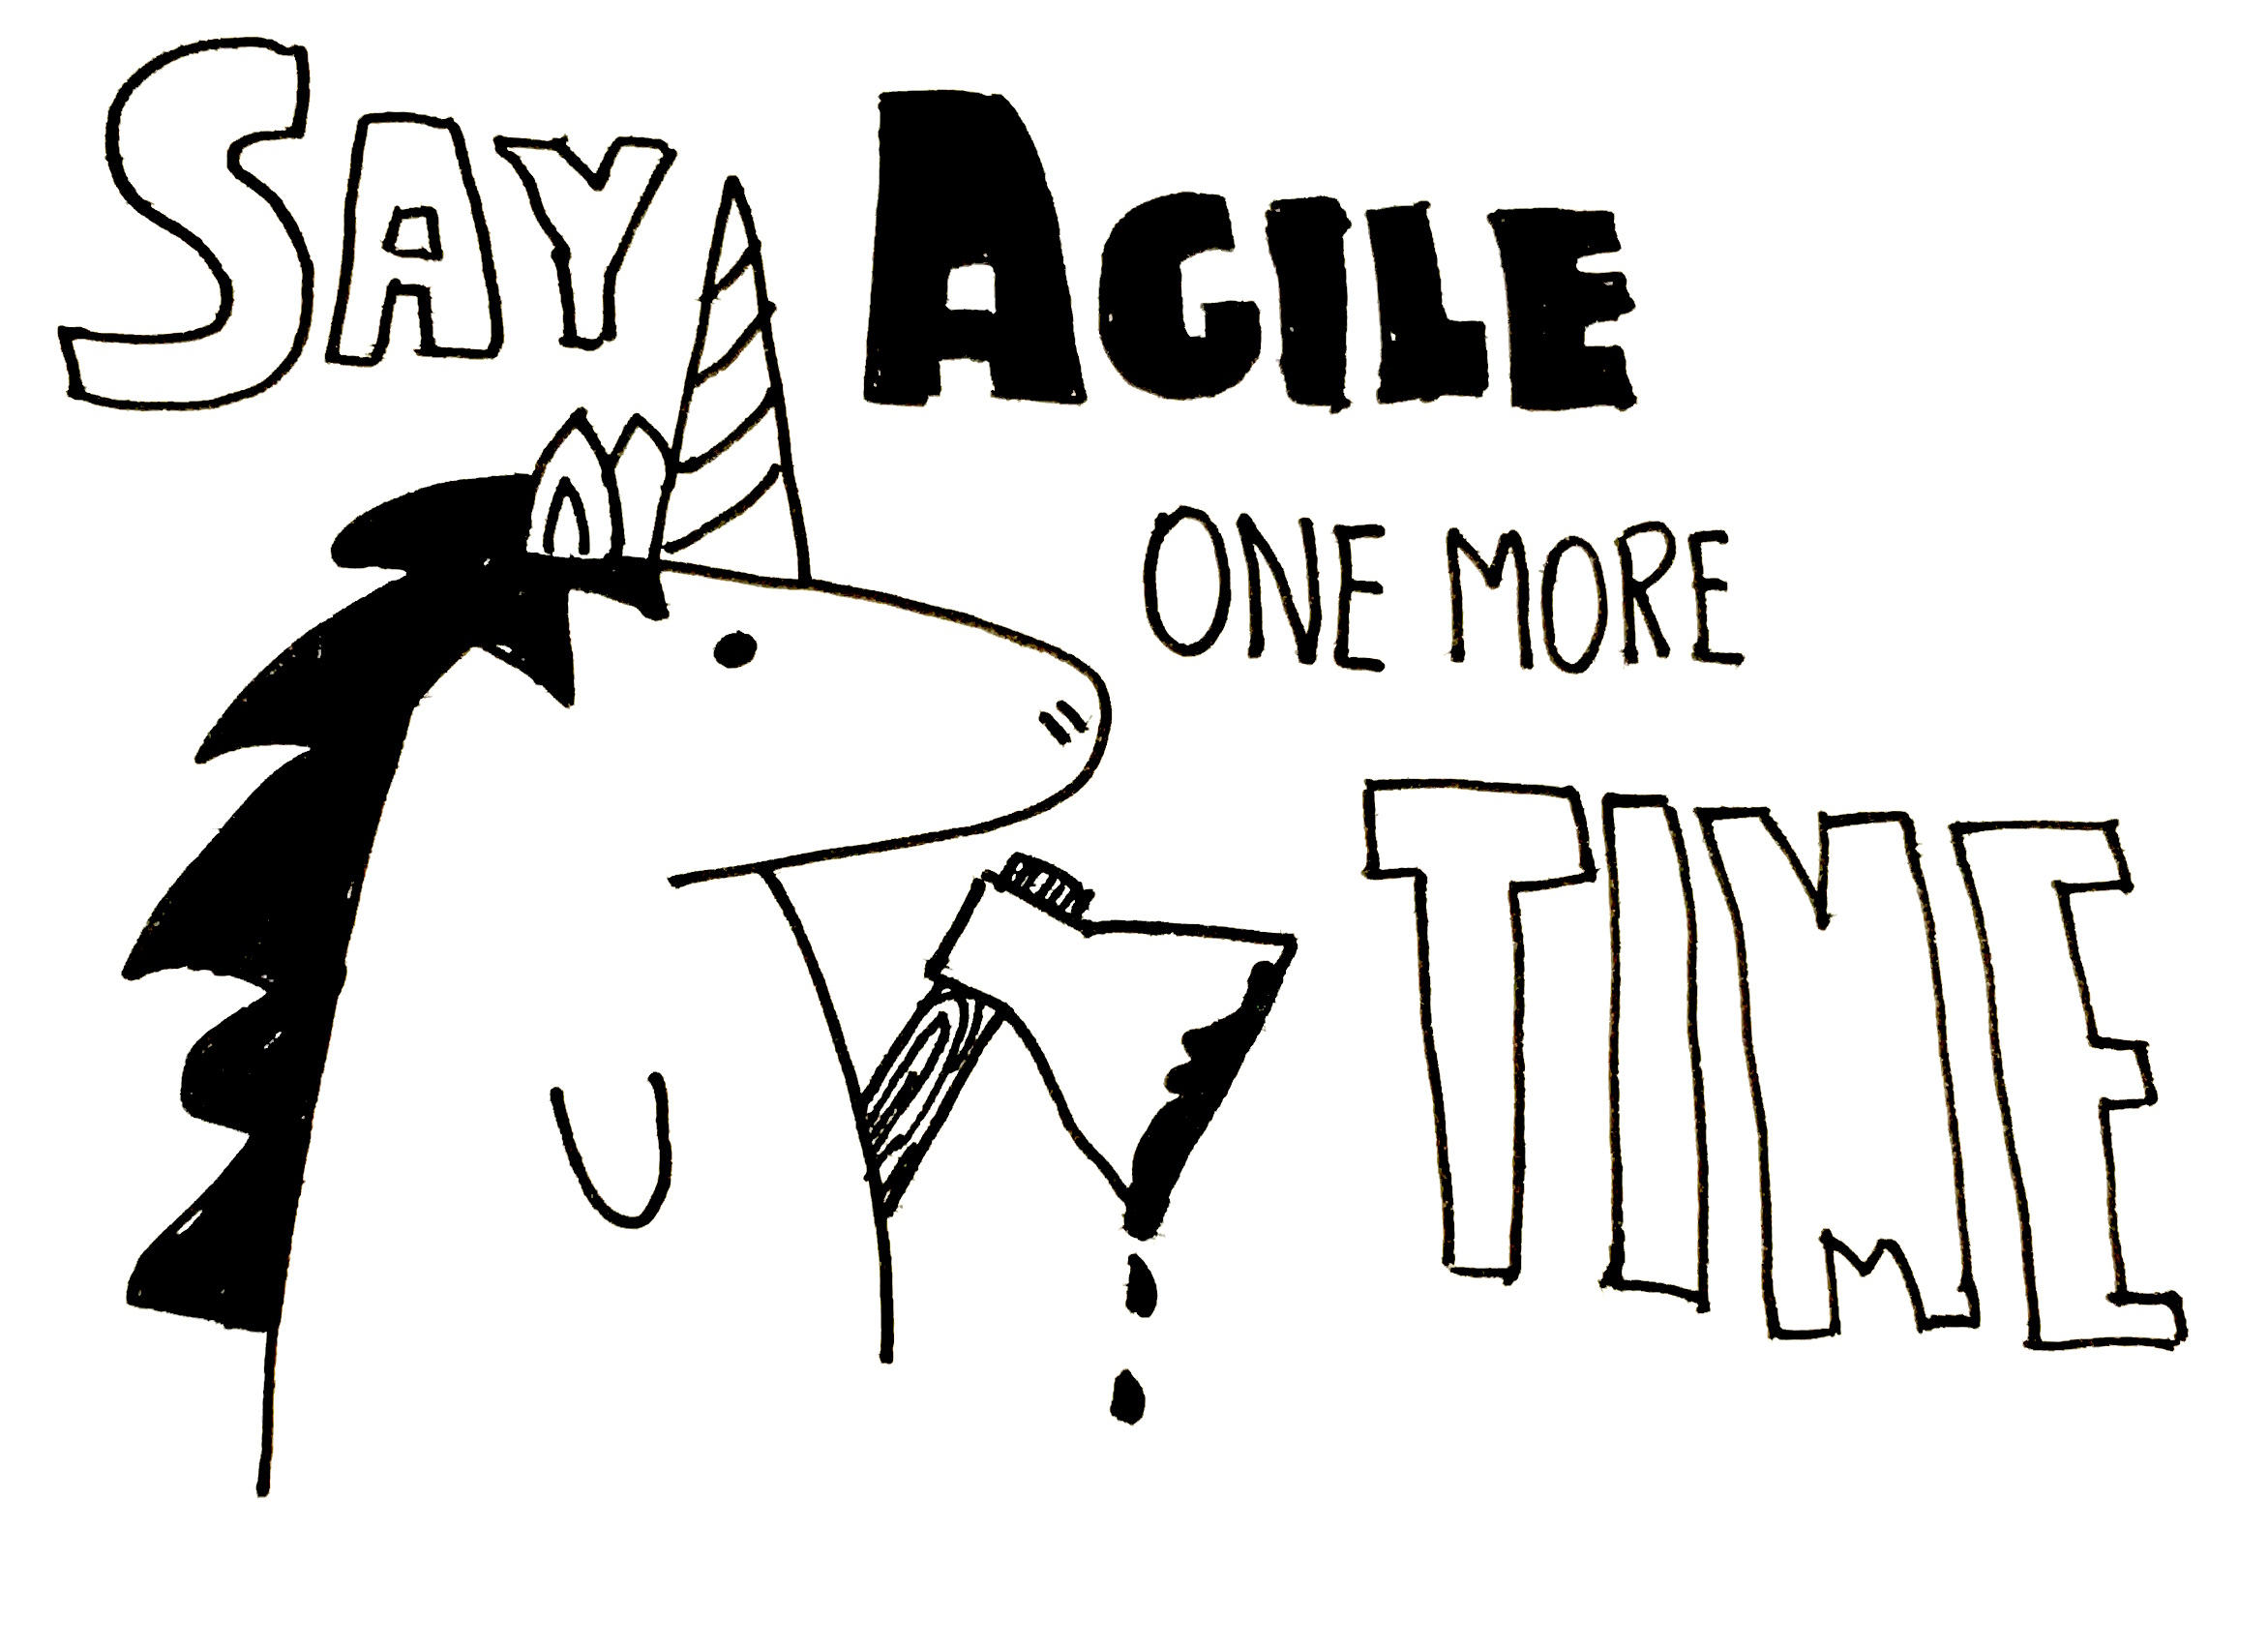 Say agile one more time tisquirrel for More com